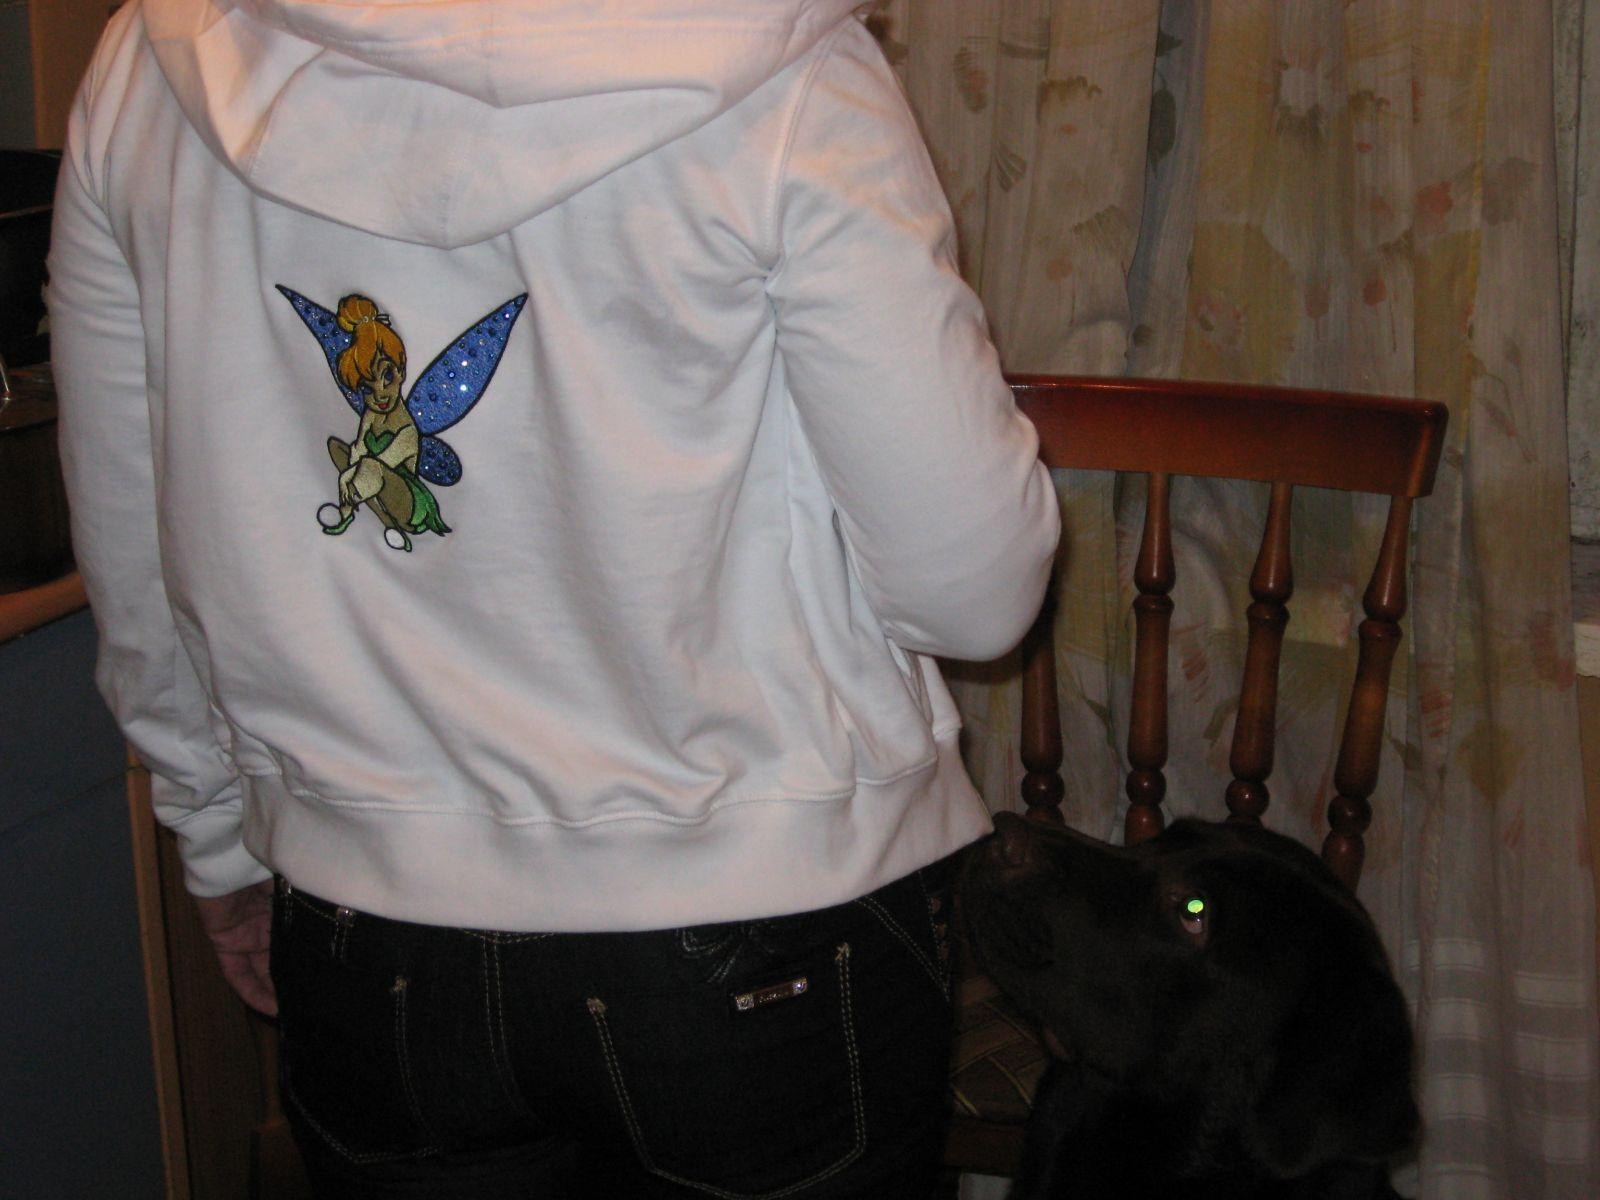 Jacket with Tinkerbell embroidery design